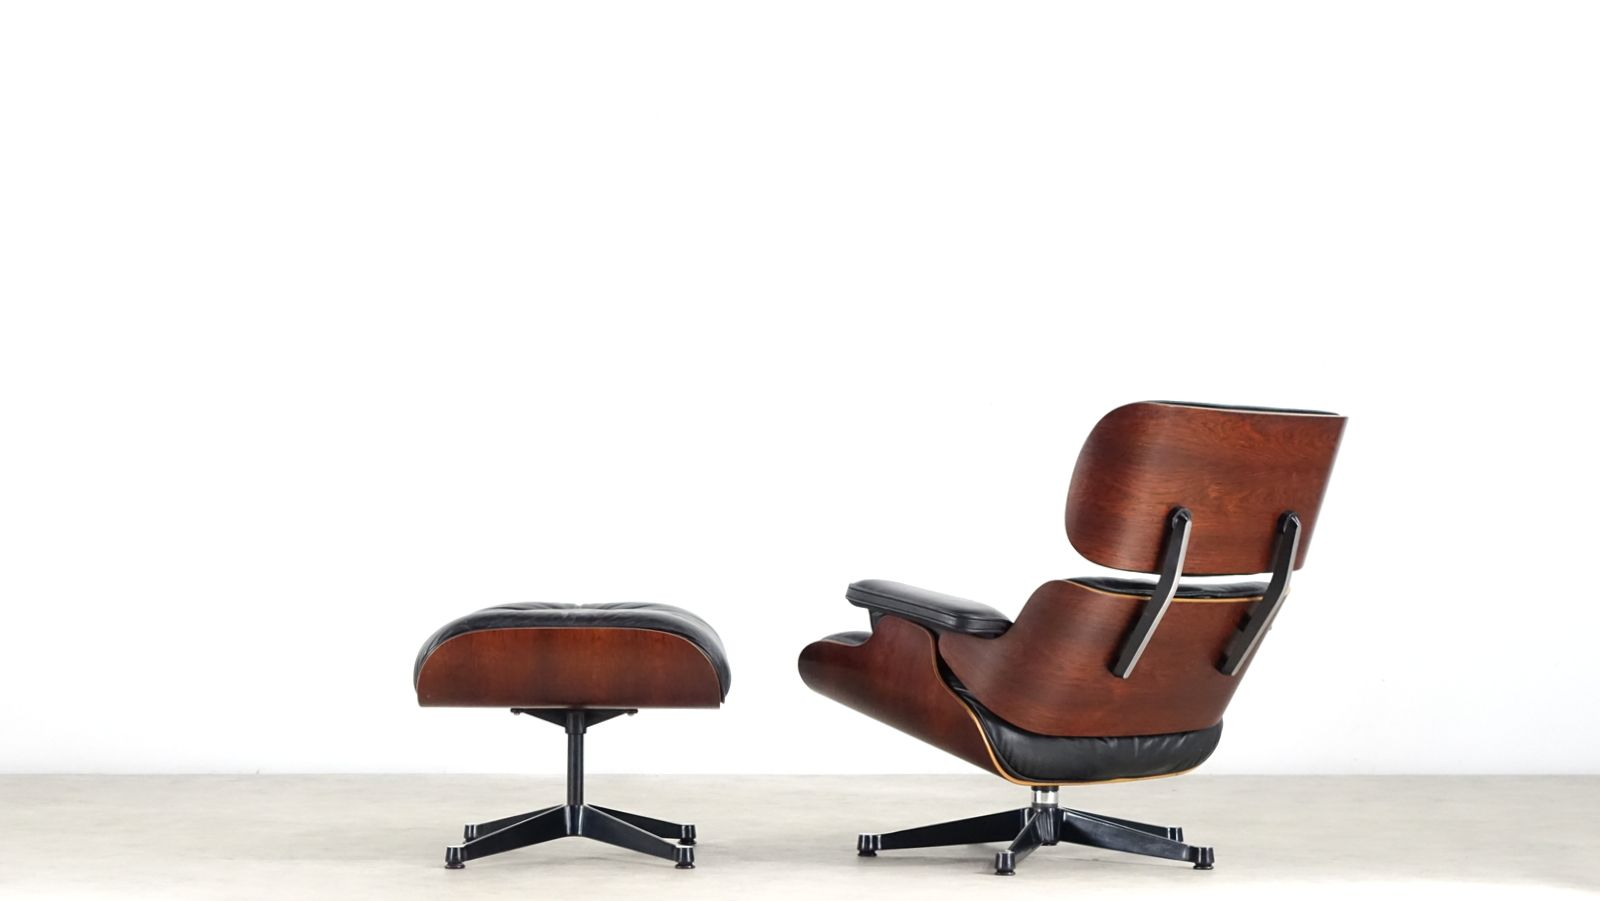 Eames Lounge Chair & Ottoman by Charles & Ray Eames for